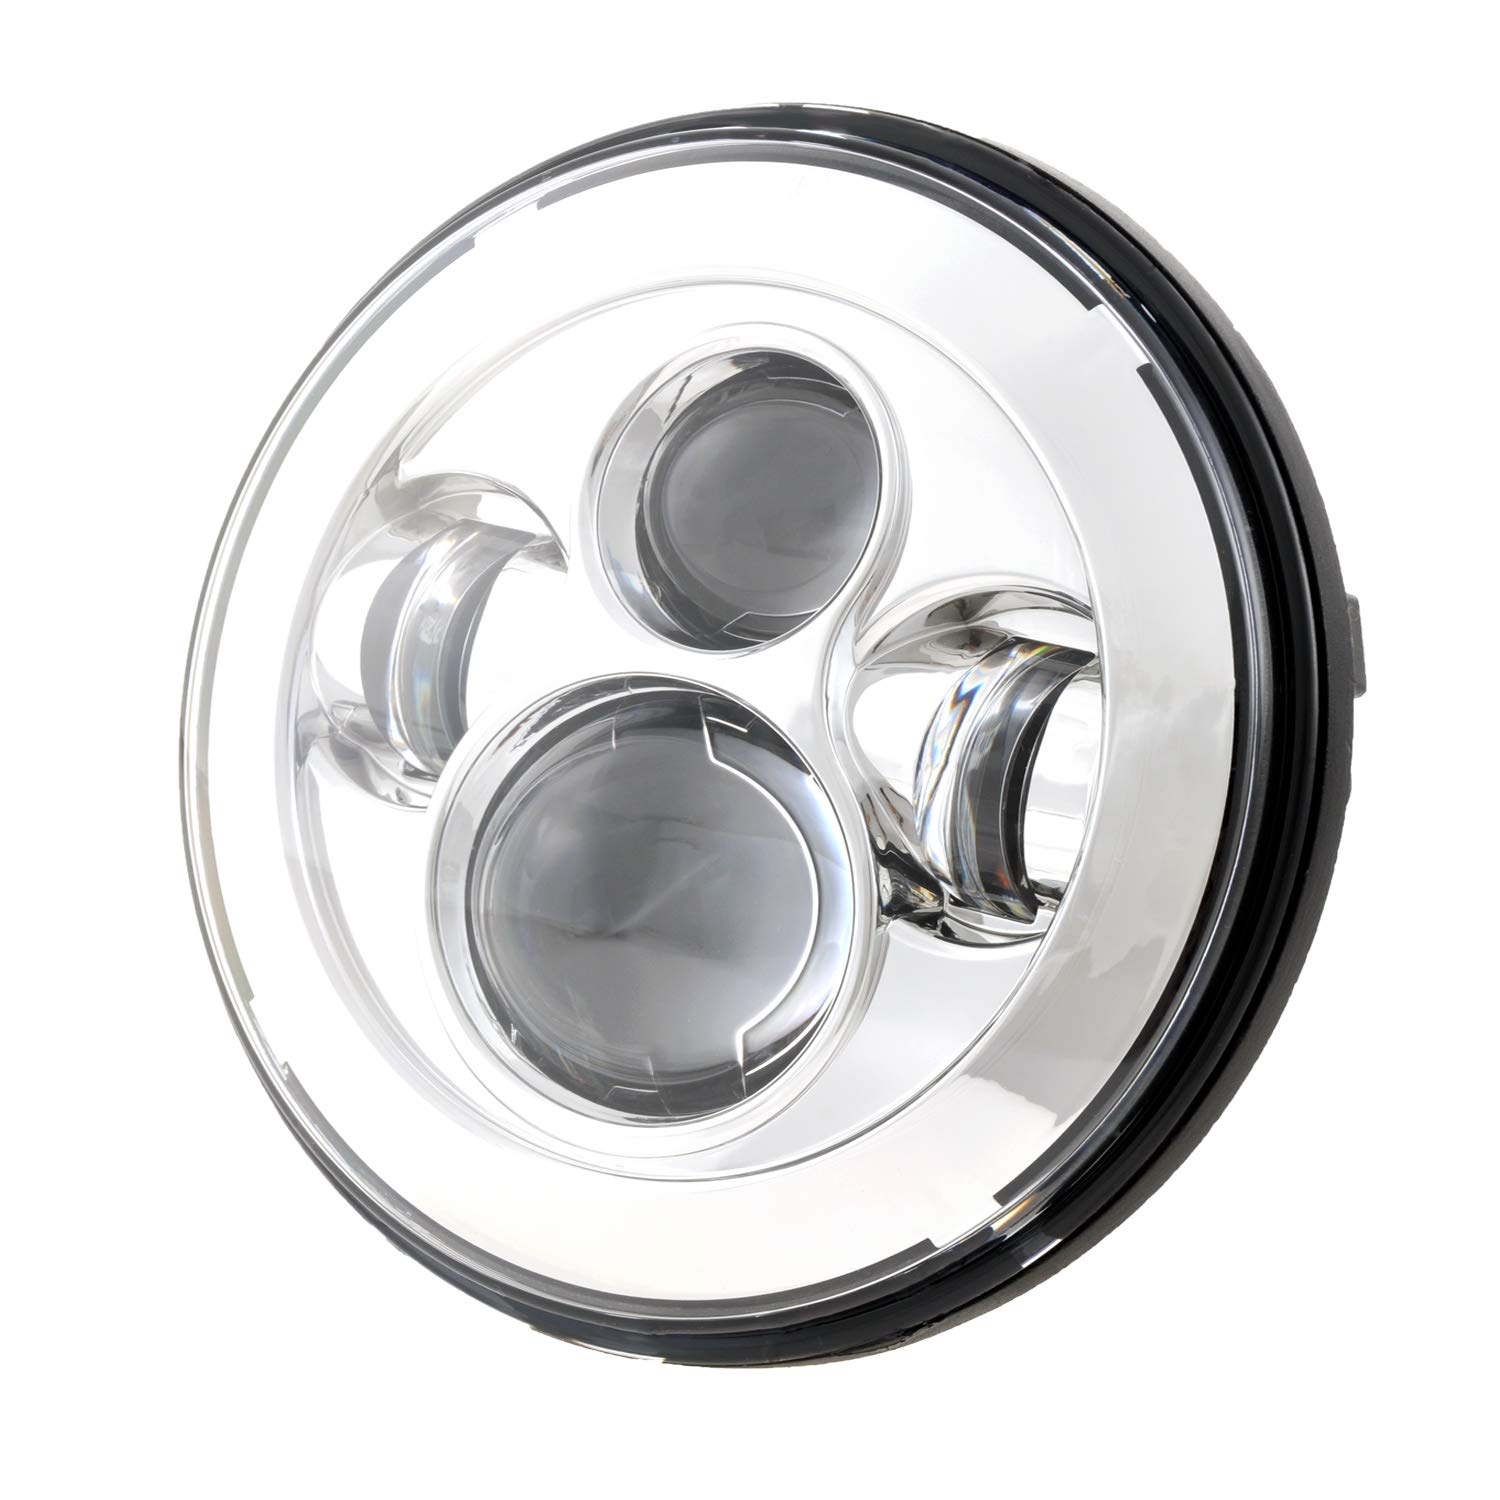 Dot Appoved Chrome Harley 7inch LED Headlight with 4.5inch Matching Chrome Passing Lamps for Harley Motorcycles with Adapter Ring and wire adapter LX-LIGHT 0048A+003B+JB